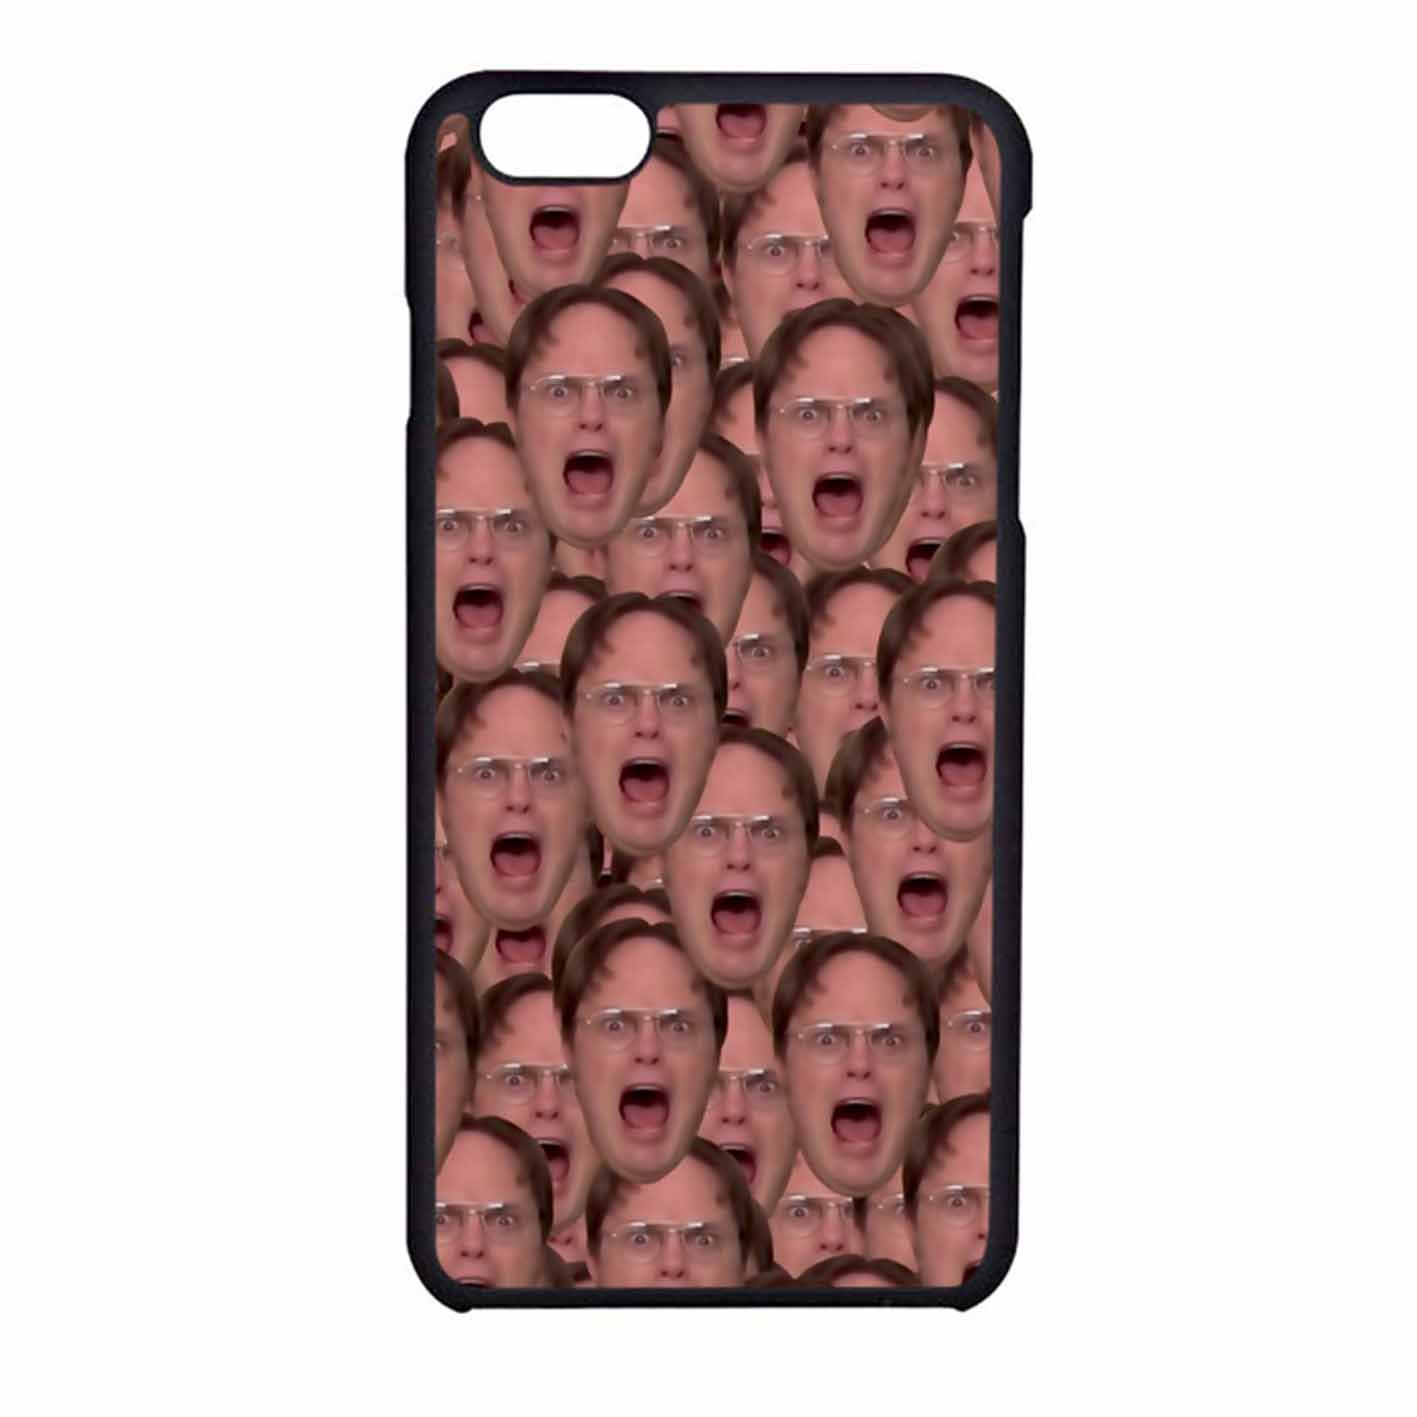 new concept 260c5 2df74 Dwight schrute the office For Iphone 6 - Iphone 6s Case: Amazon.ca ...